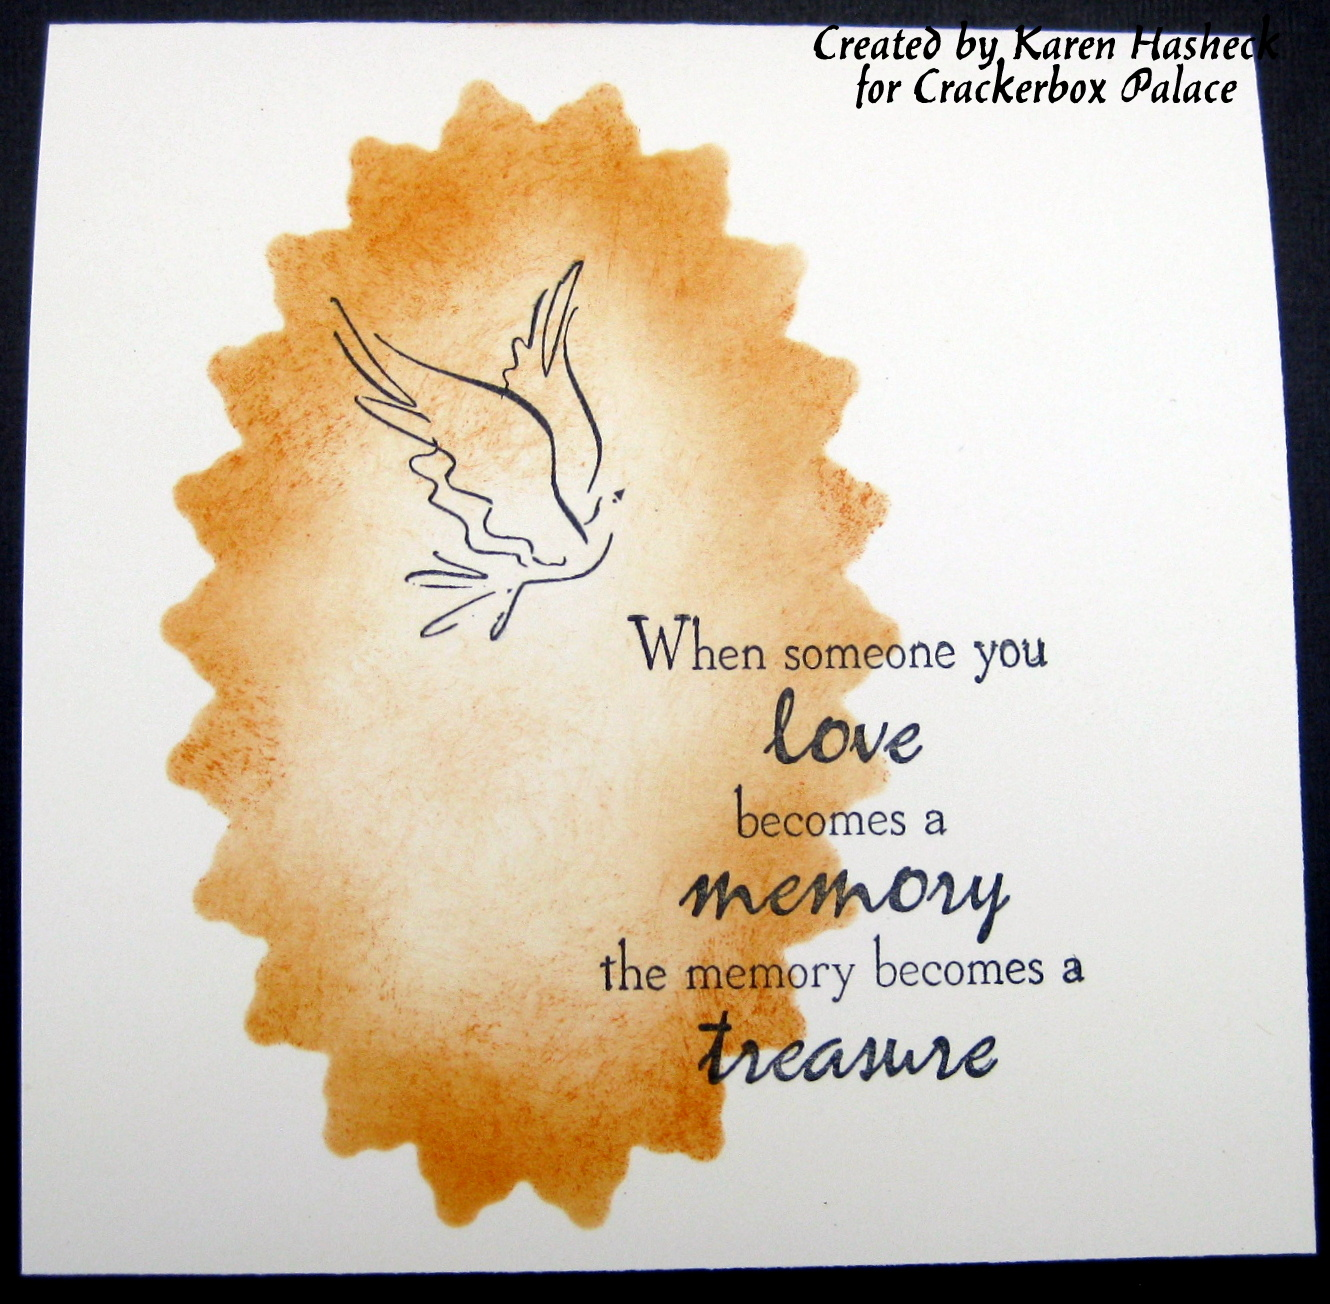 crackerbox palace rubber stamp blog sympathy cards and